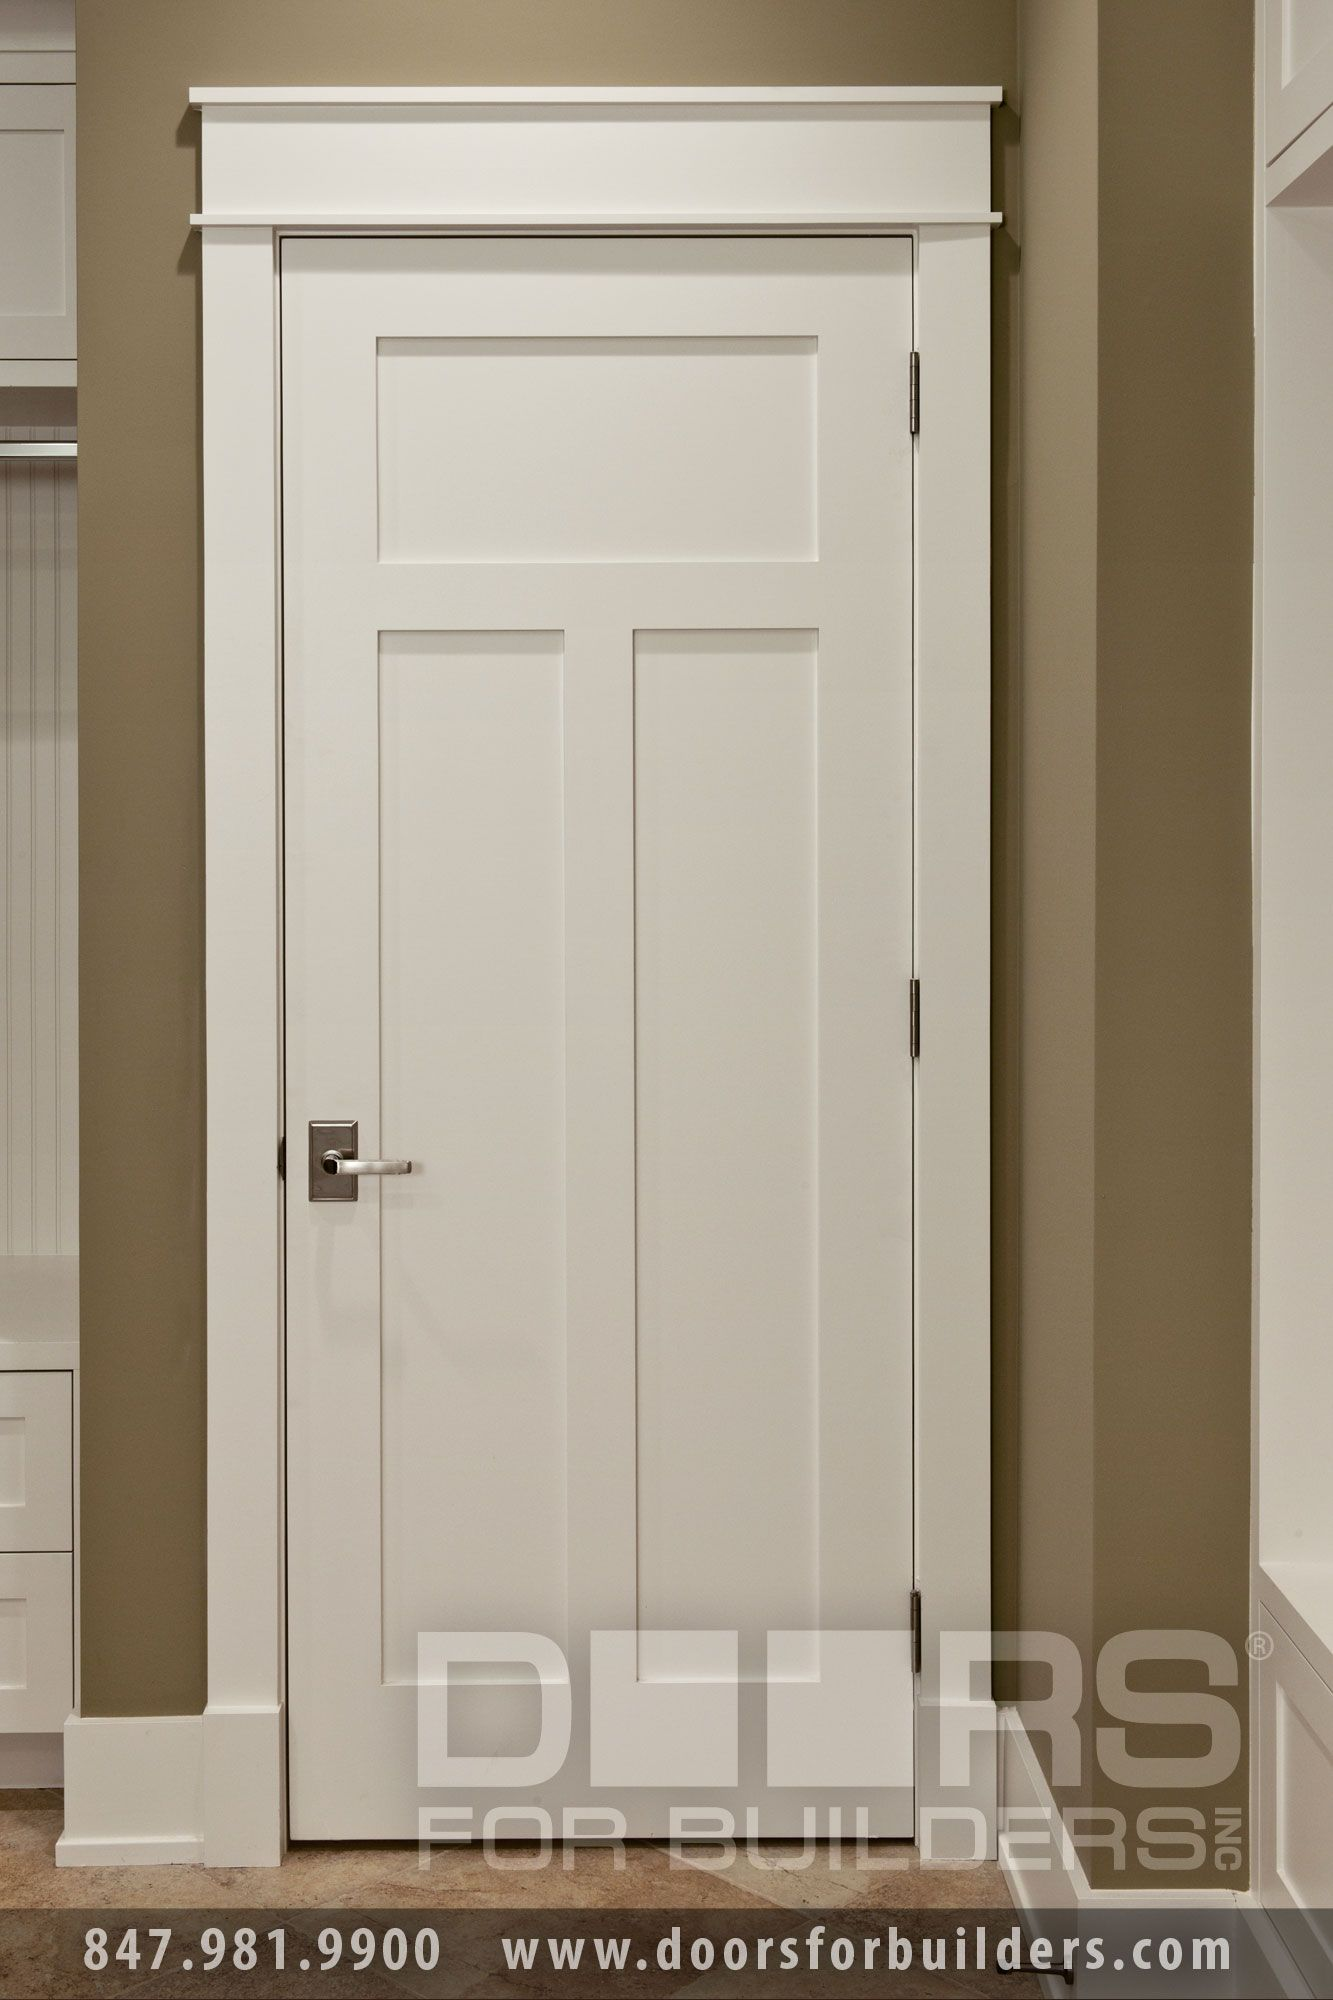 Craftsman Style Custom Interior Wood Doors | Custom Wood Interior Doors | Door from Doors for Builders Inc. : mission style interior doors - zebratimes.com